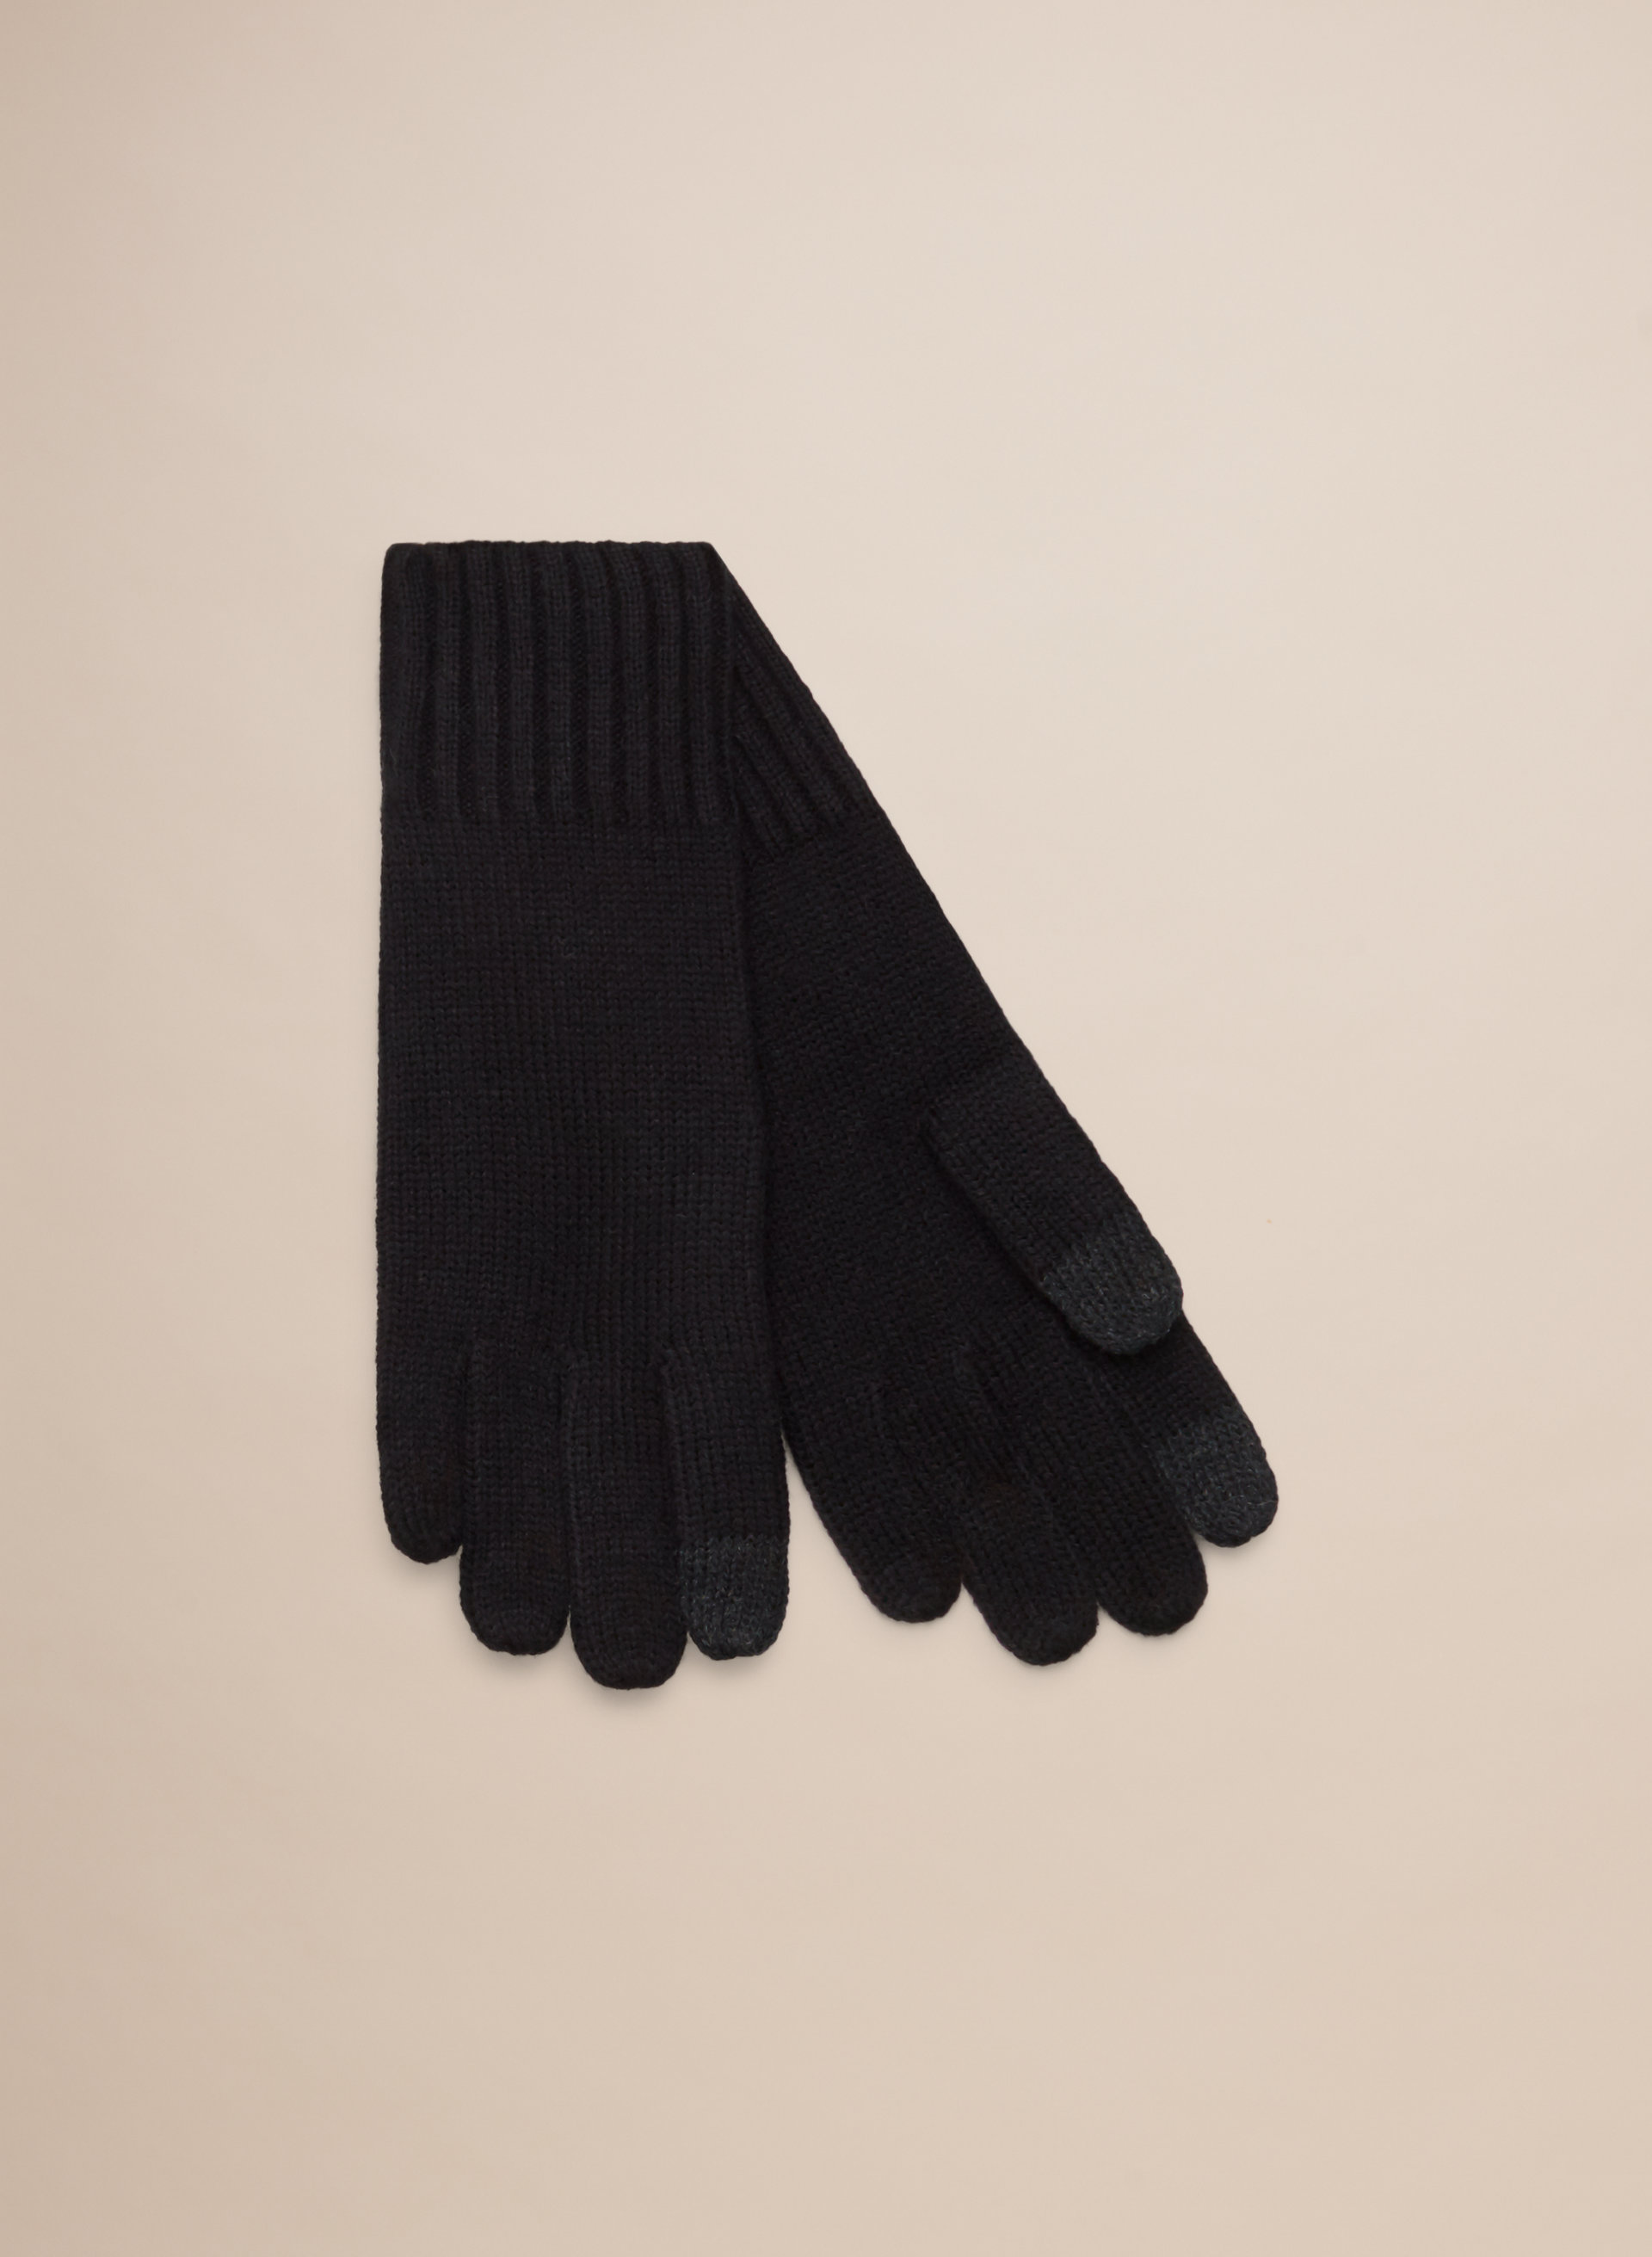 Womens leather gloves vancouver - Tech Friendly Gloves Aritzia